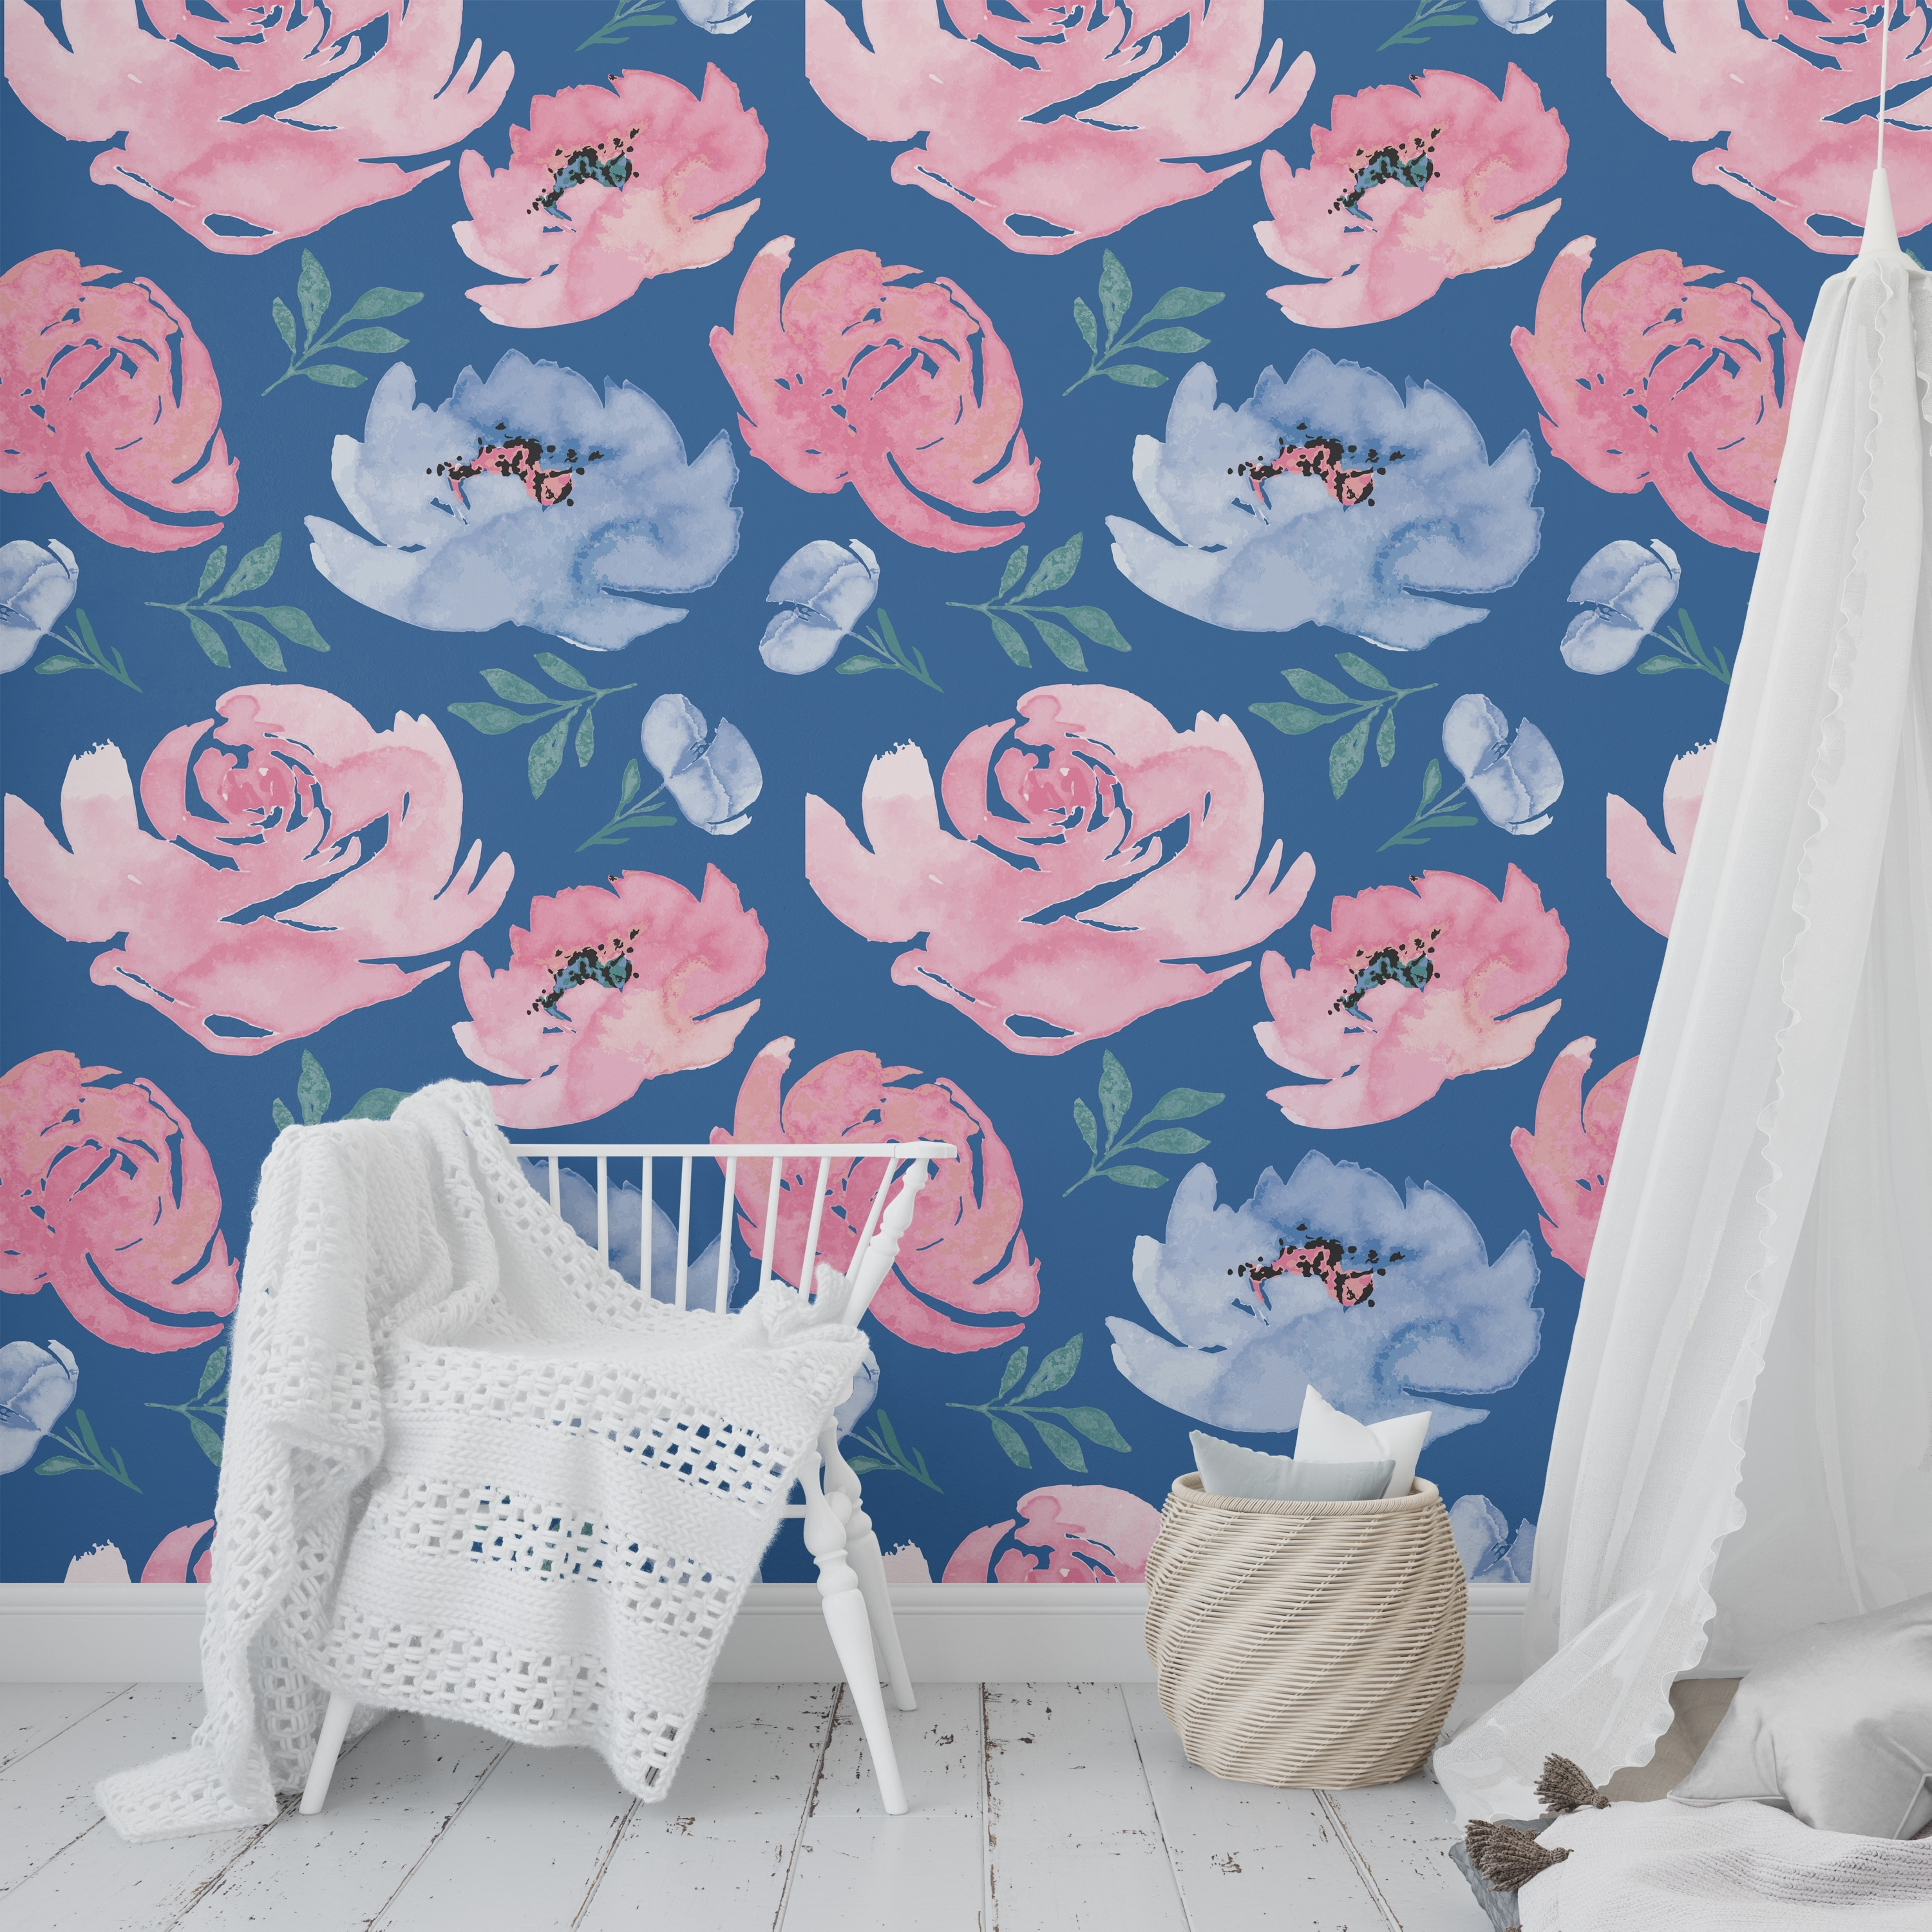 Shop Boho Floral Dance Dark Blue Peel And Stick Wallpaper By Kavka Designs 2 X 16 On Sale Overstock 31638085